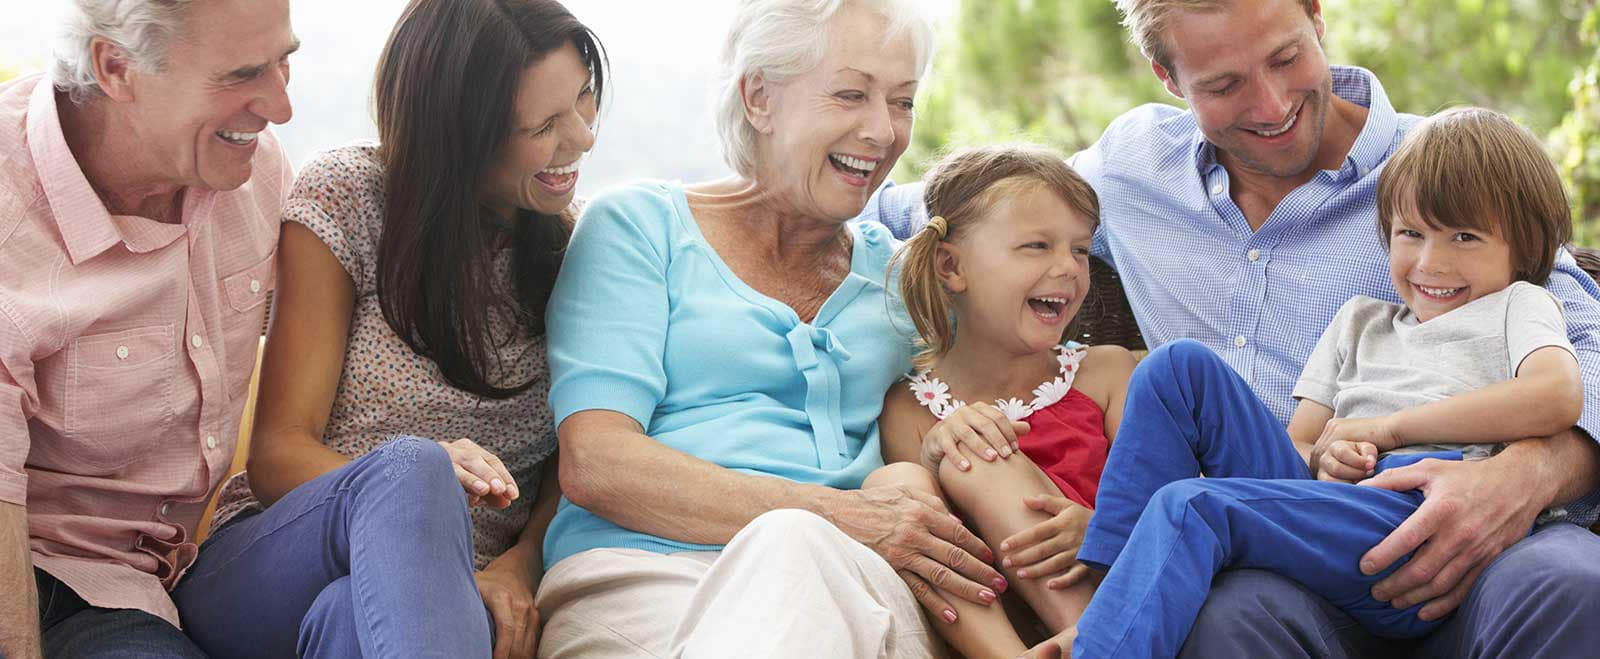 Famille-Multi-Generation avec parents, enfants et grands parents